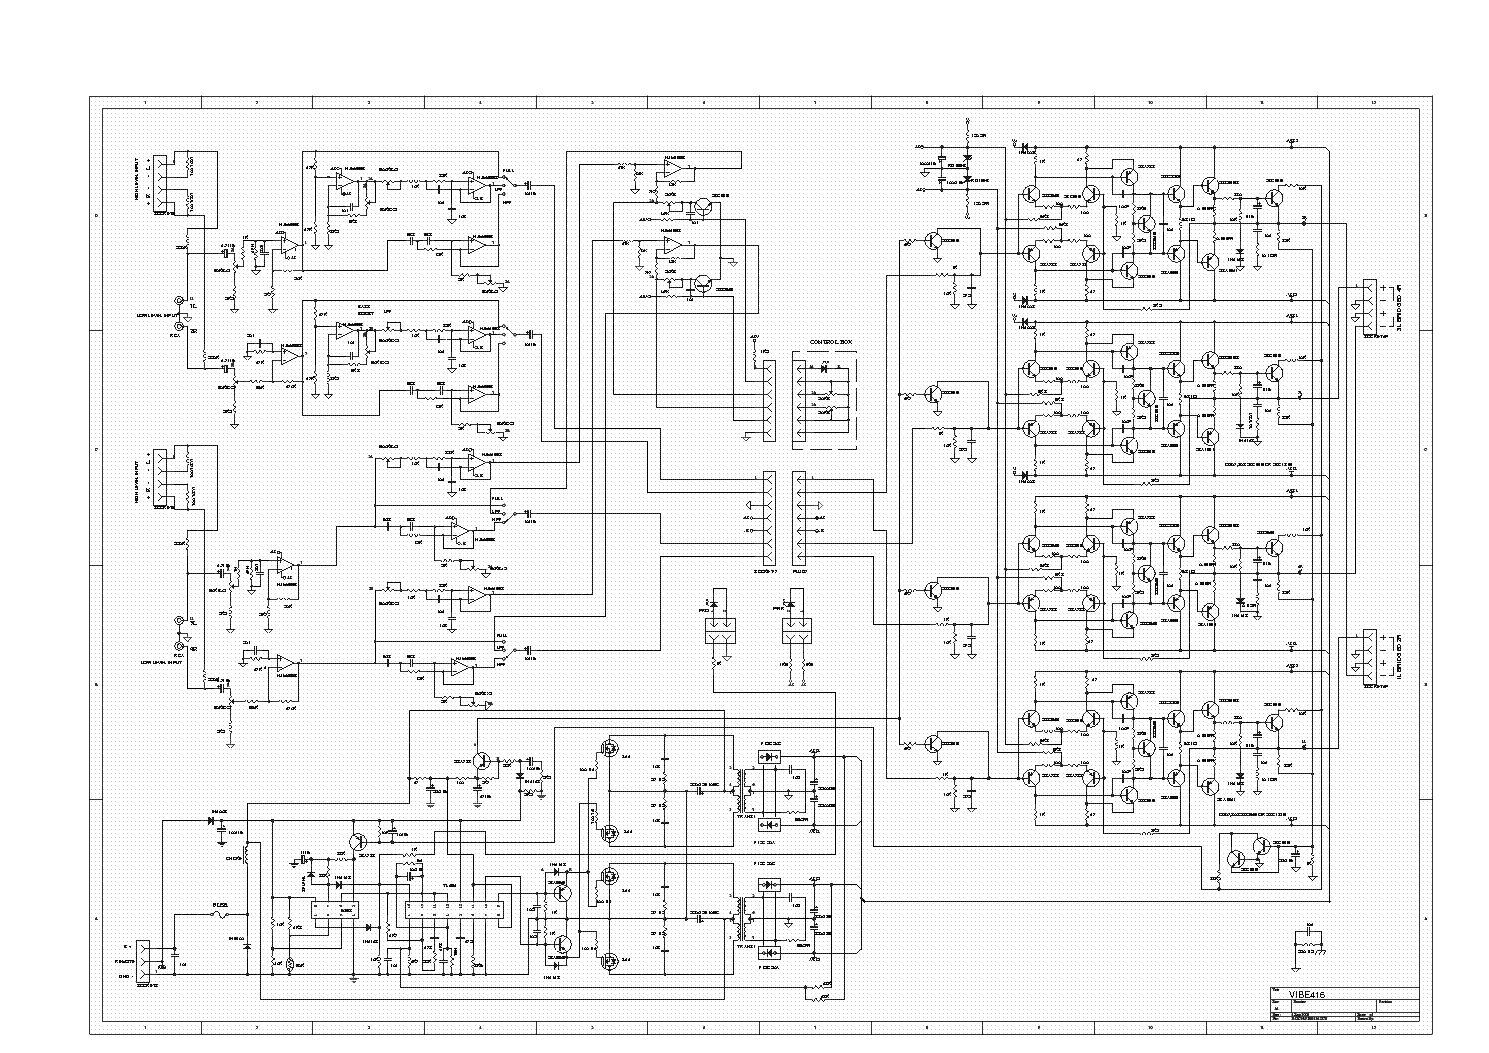 lanzar vibe416 car amplifier sch service manual download  schematics  eeprom  repair info for